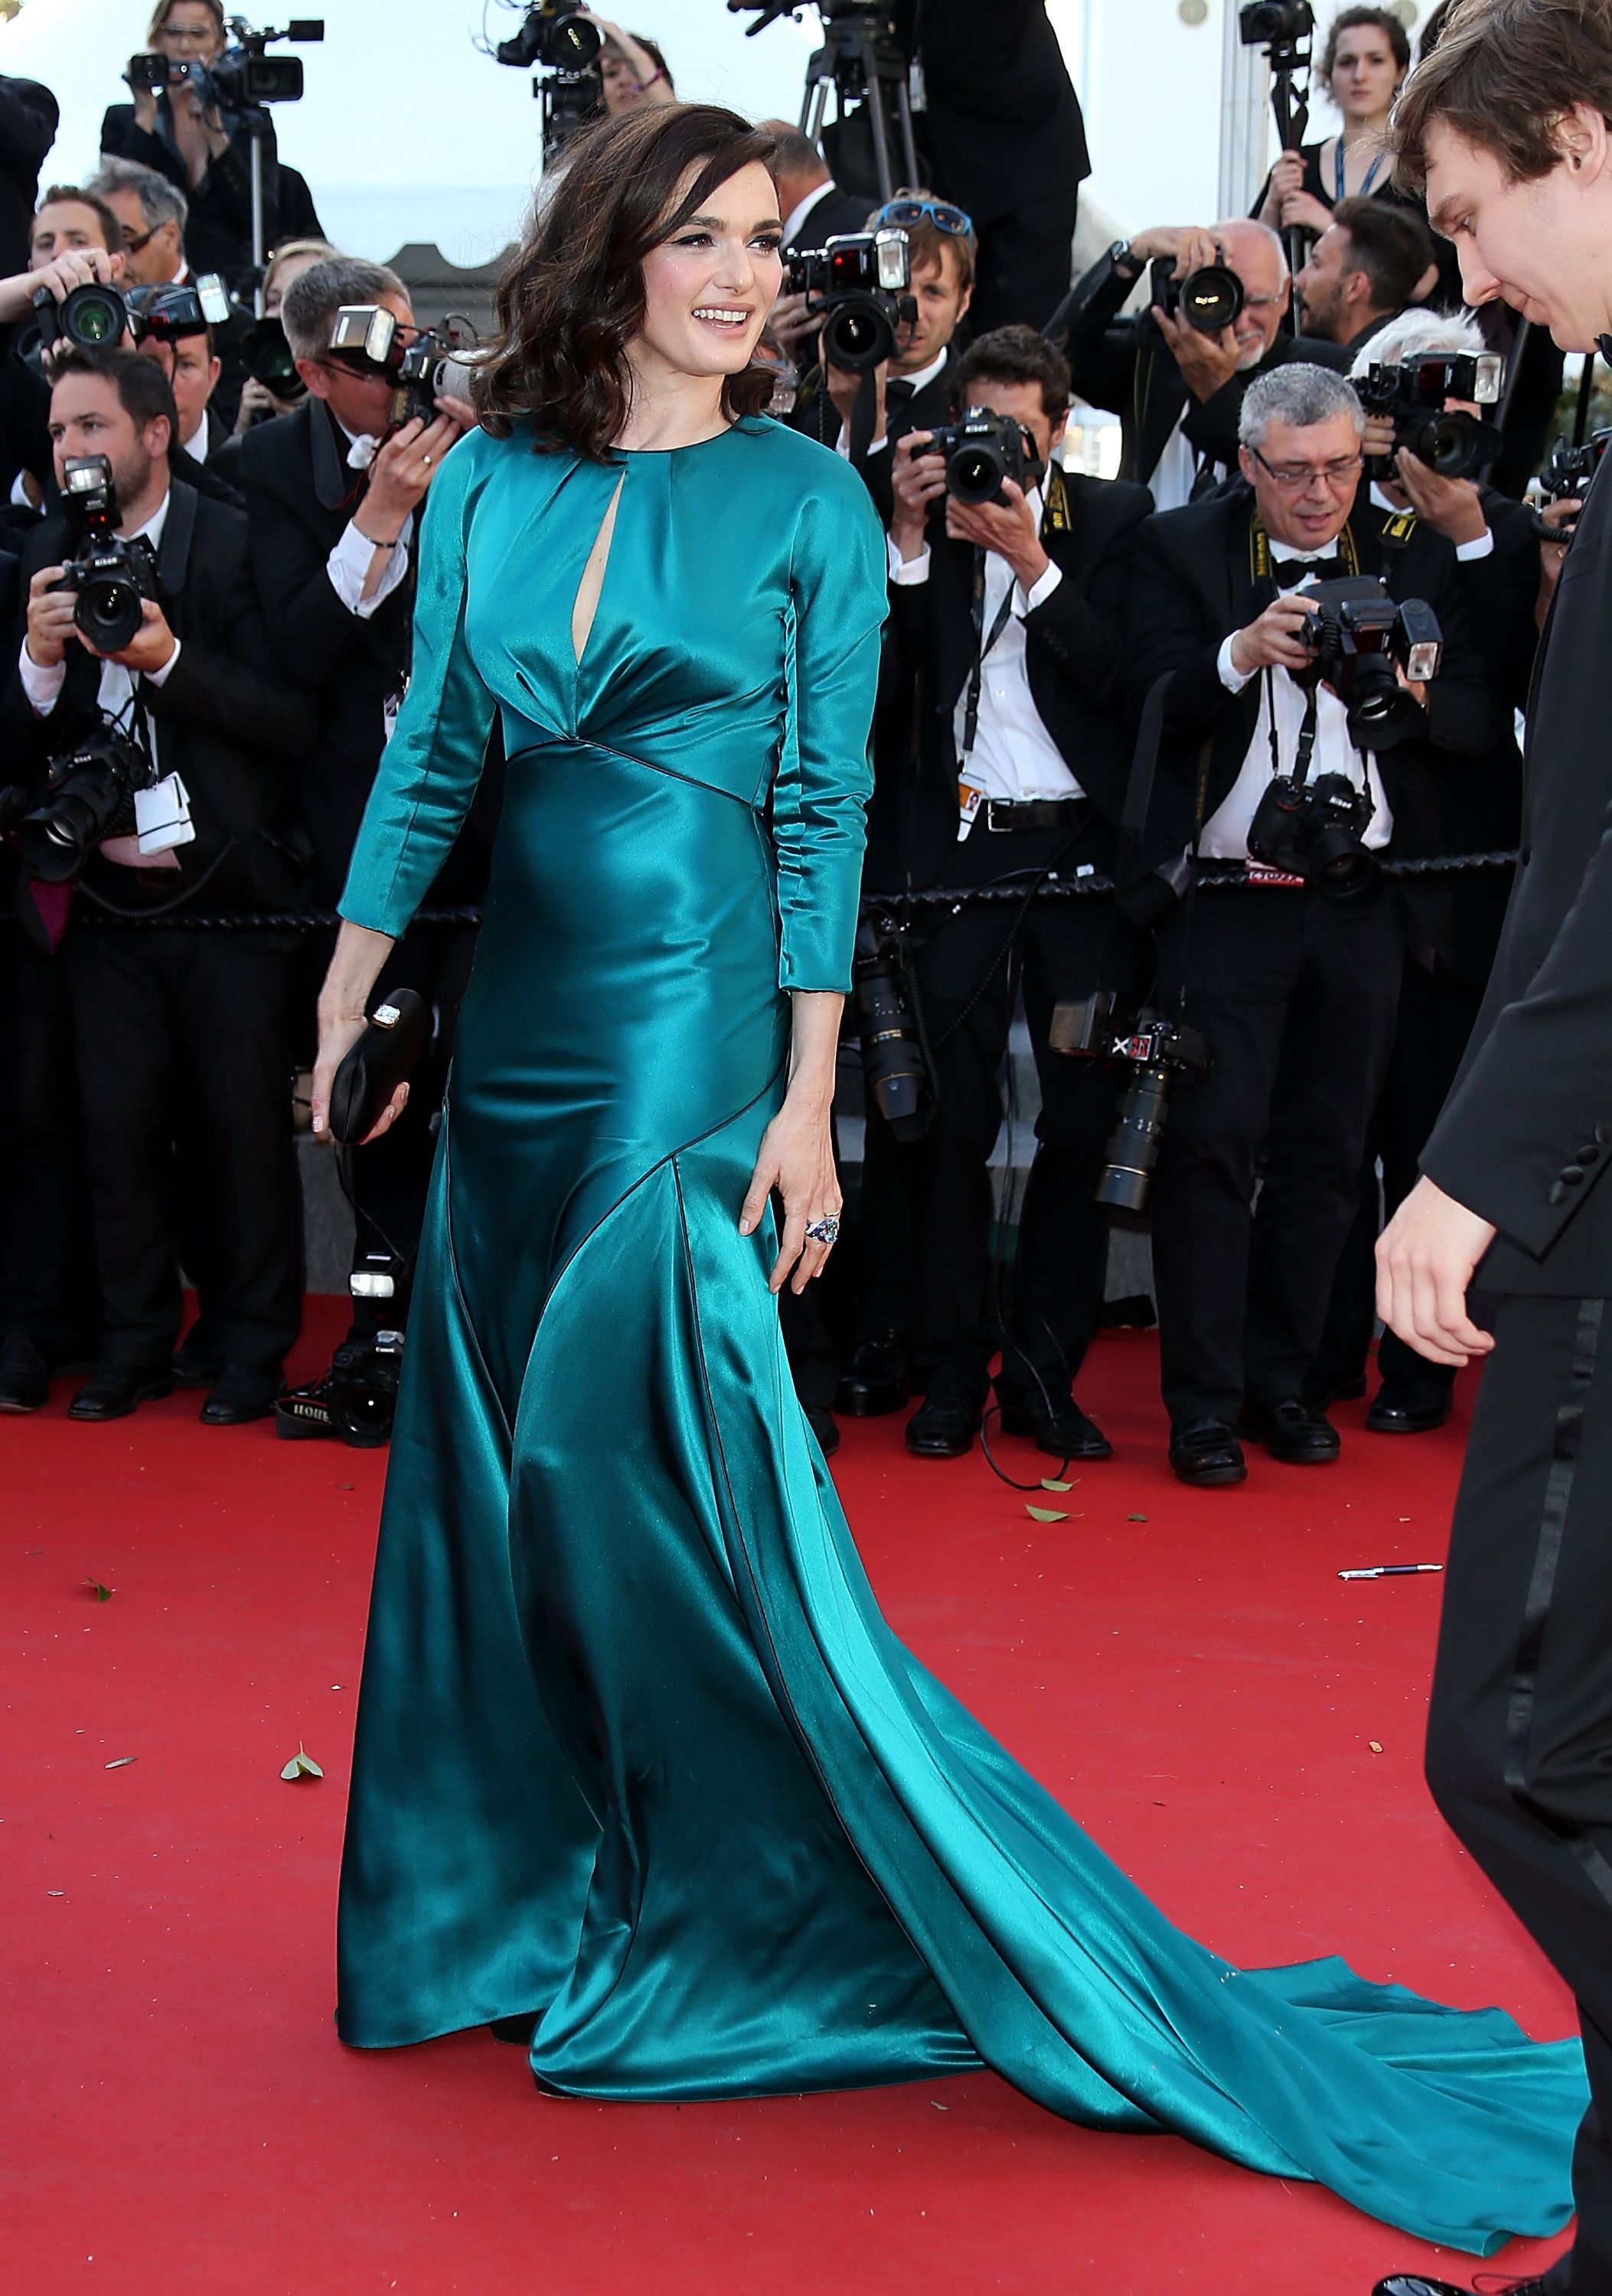 The Best Looks from the Cannes Film Festival | Cannes film festival